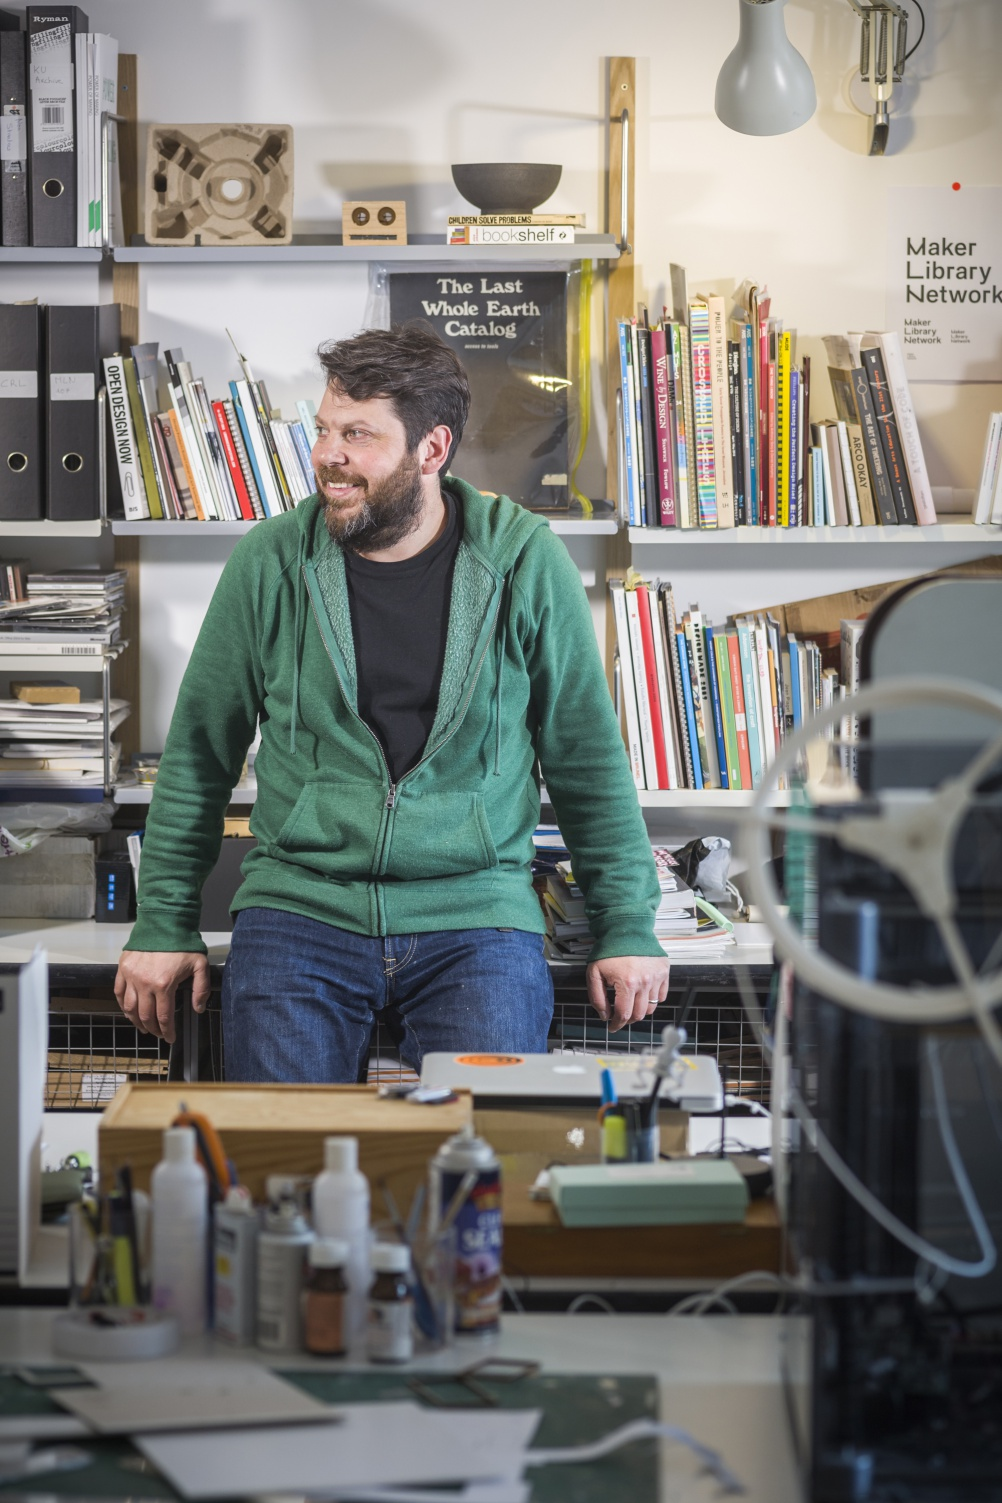 Daniel Charny, Professor of Design, Kingston University and director, From Now On